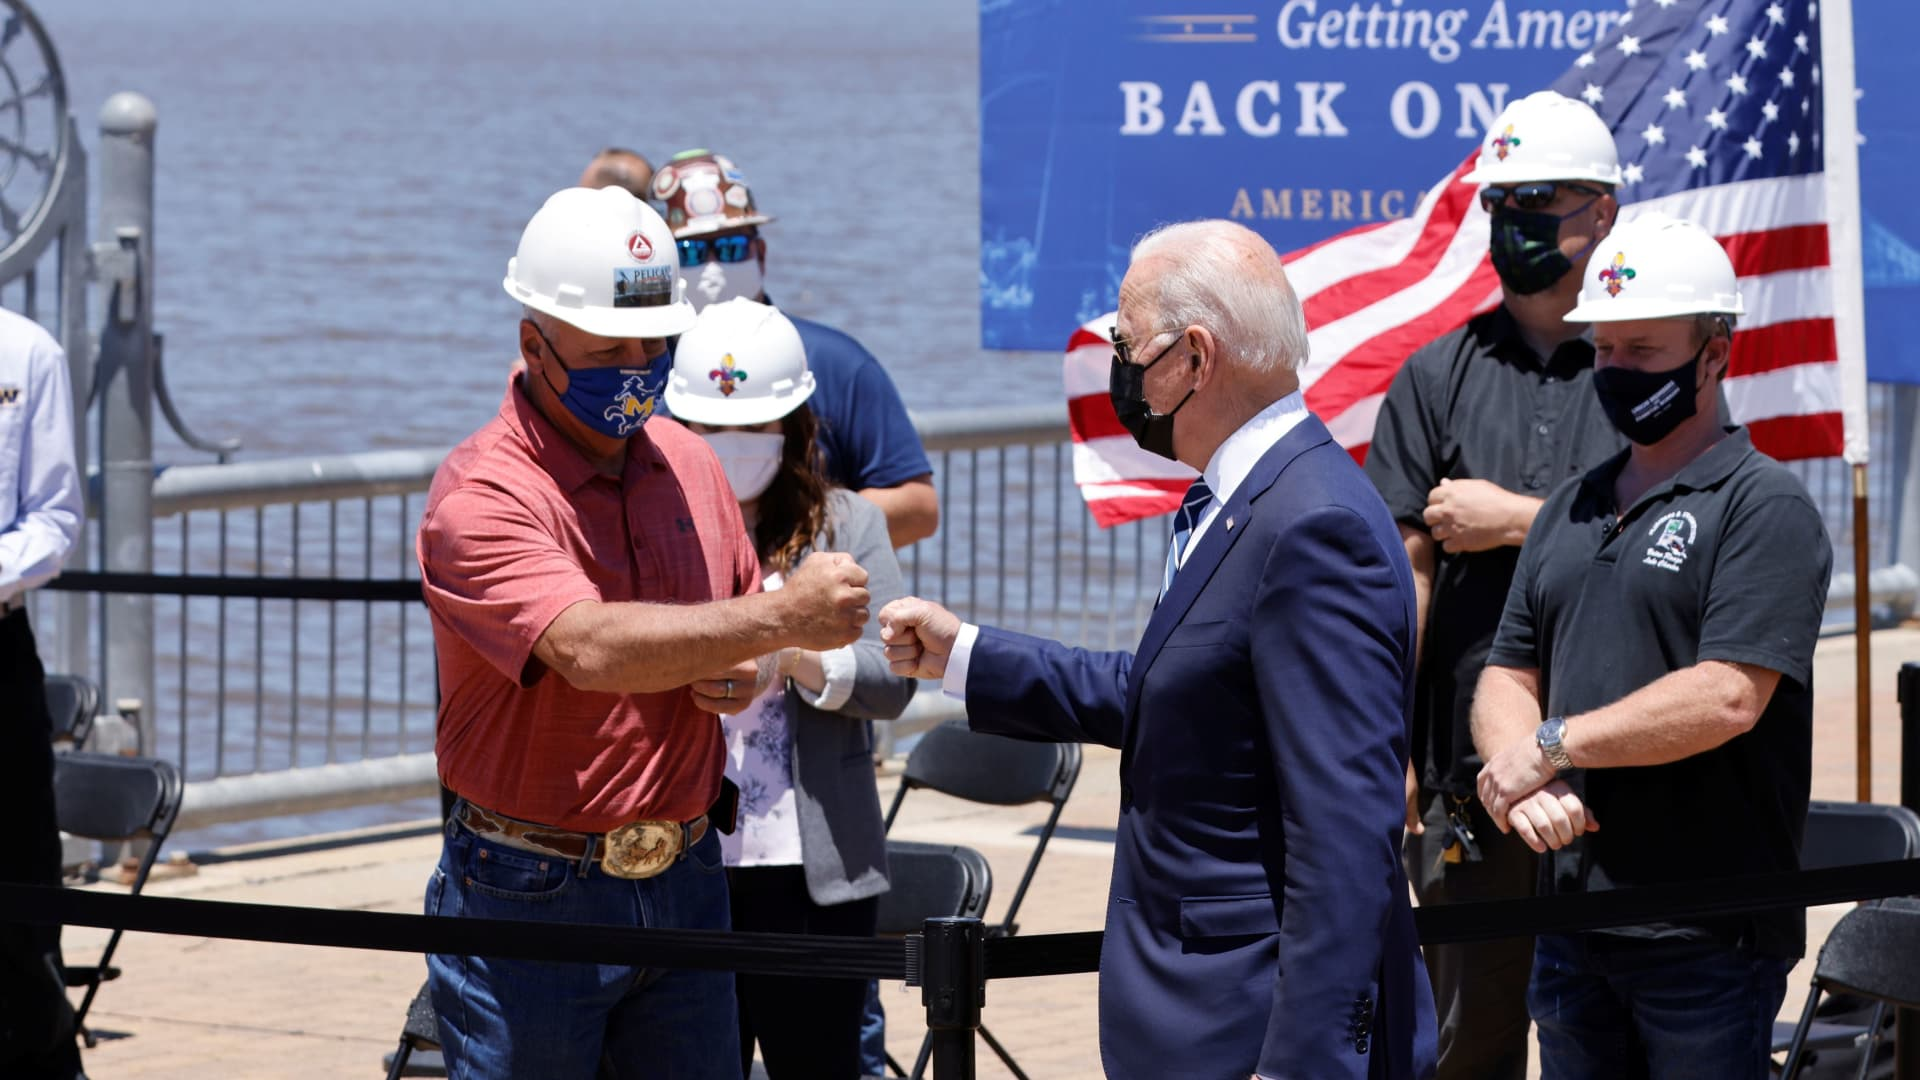 President Joe Biden bumps fist with a man before delivering remarks on his American Jobs Plan near the Calcasieu River Bridge in Lake Charles, Louisiana, U.S., May 6, 2021.